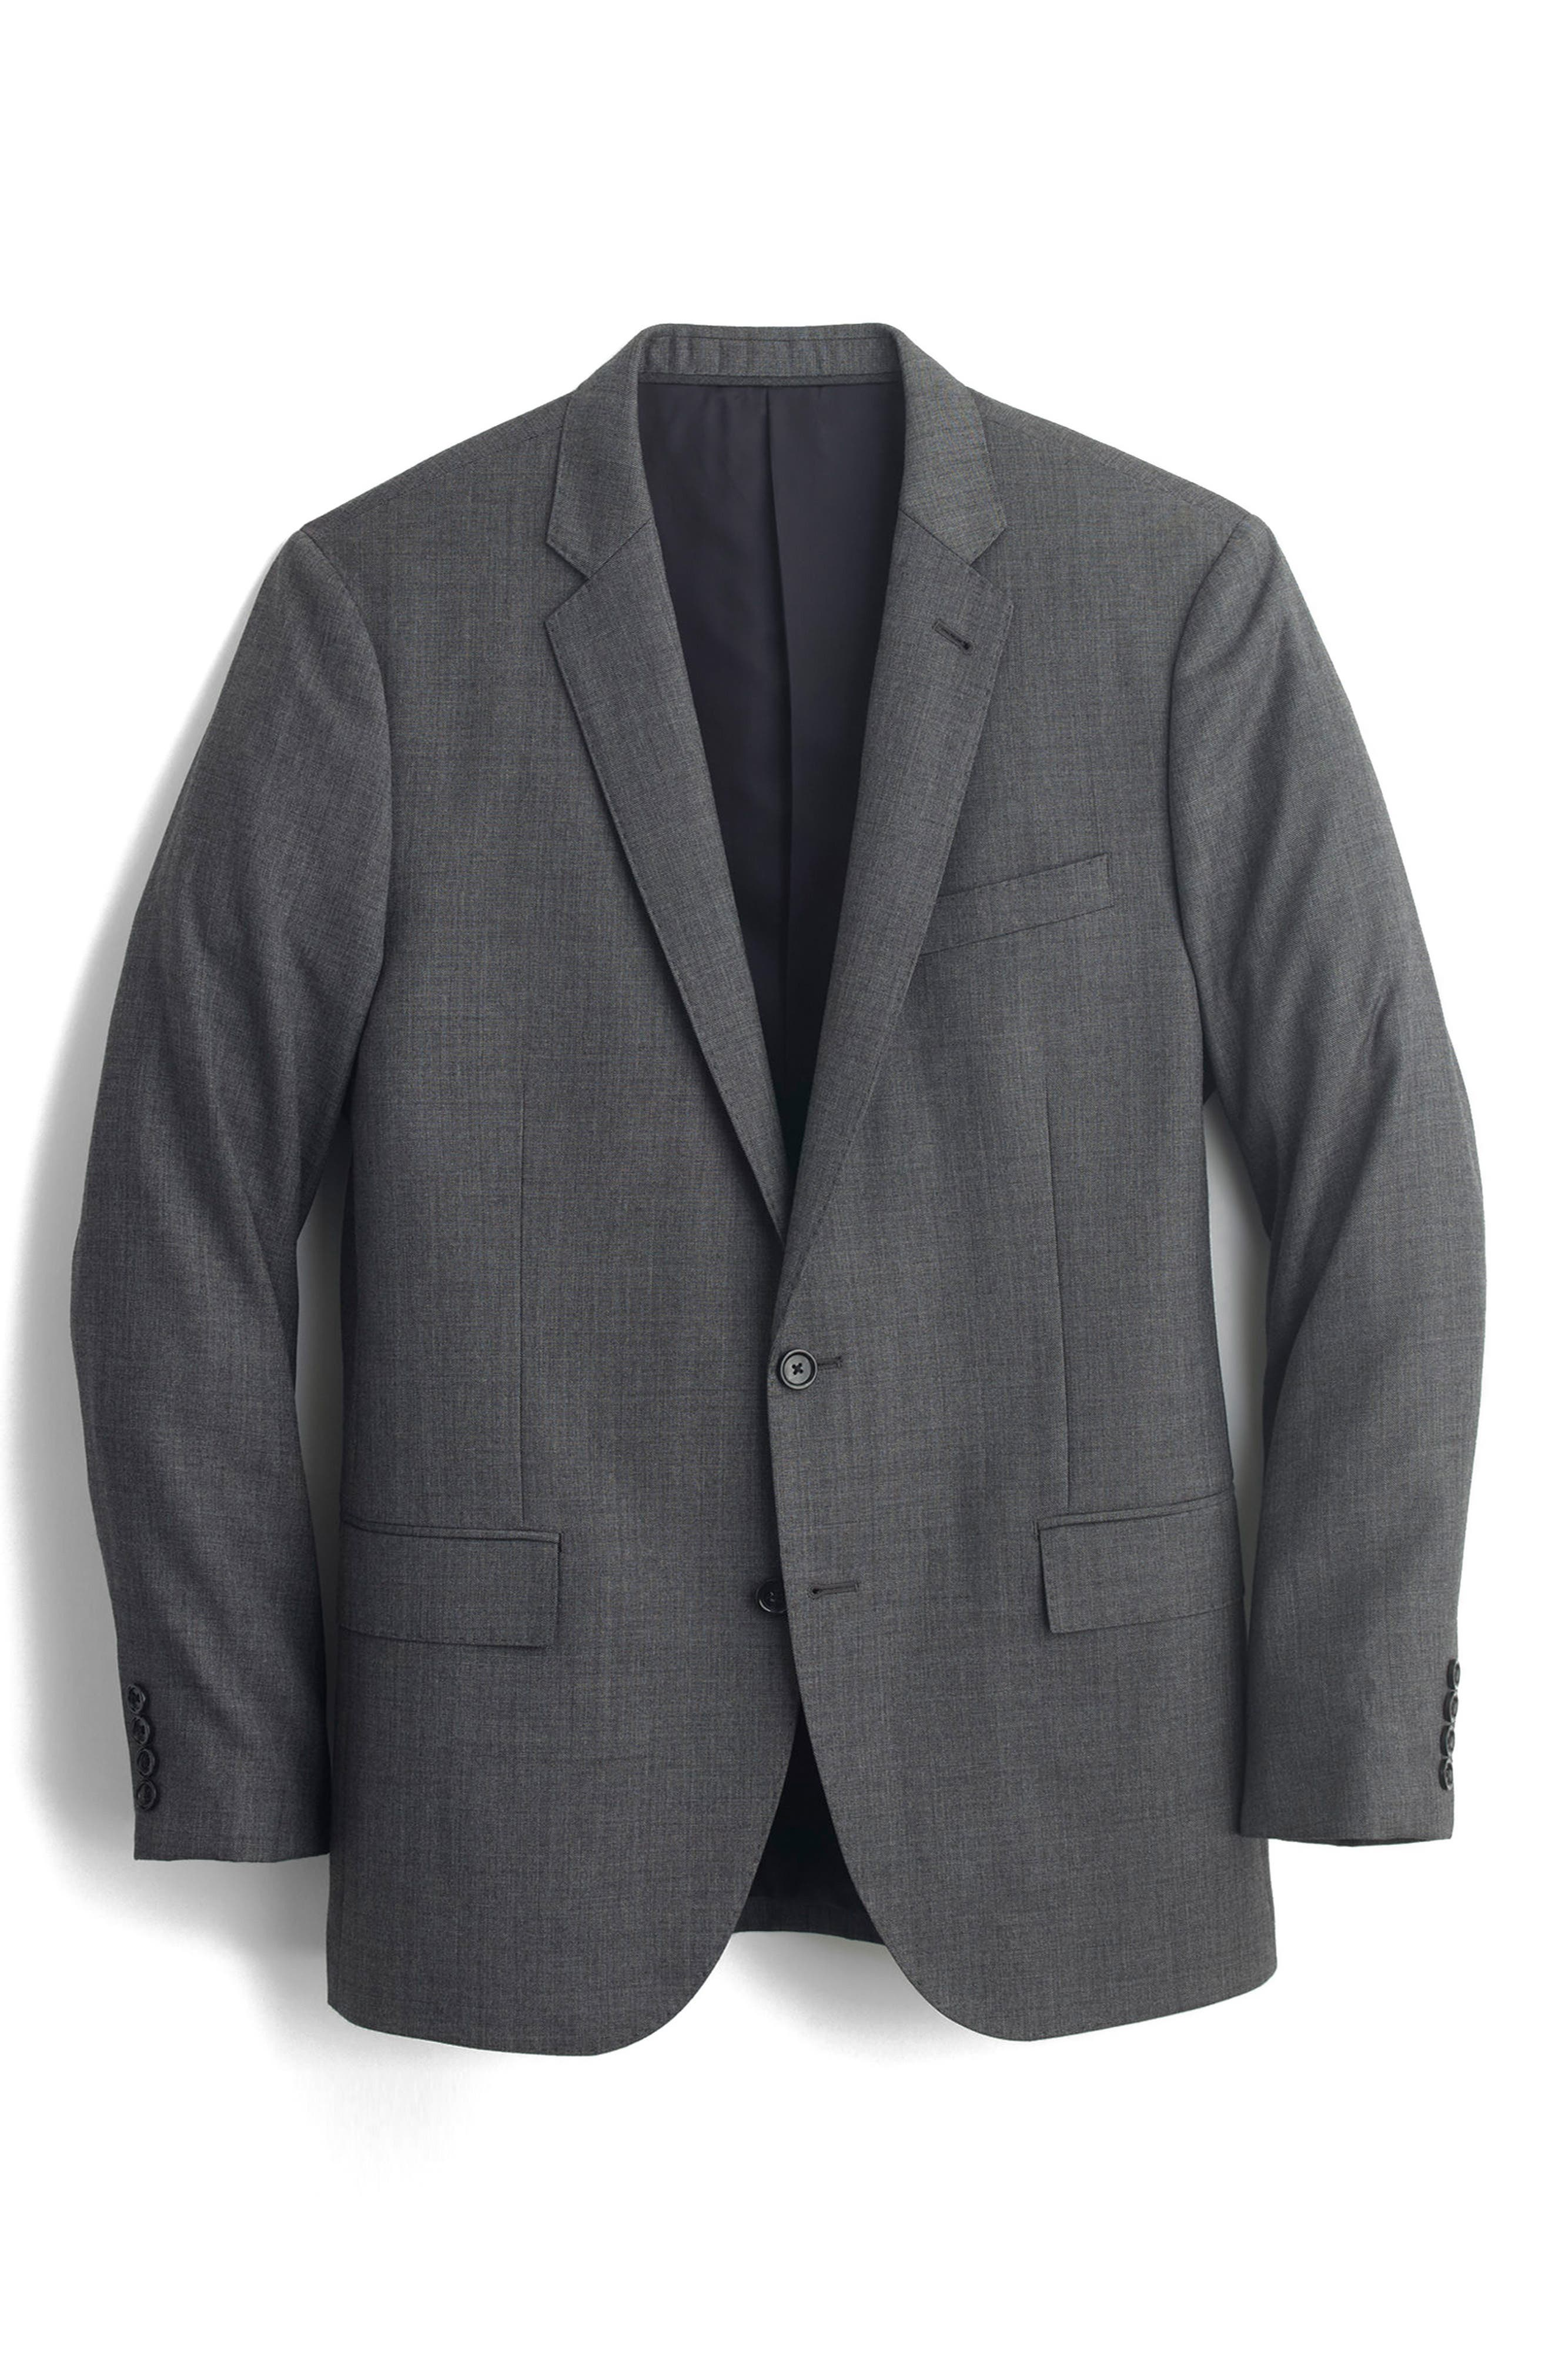 Ludlow Trim Fit Solid Wool Sport Coat,                             Alternate thumbnail 6, color,                             020